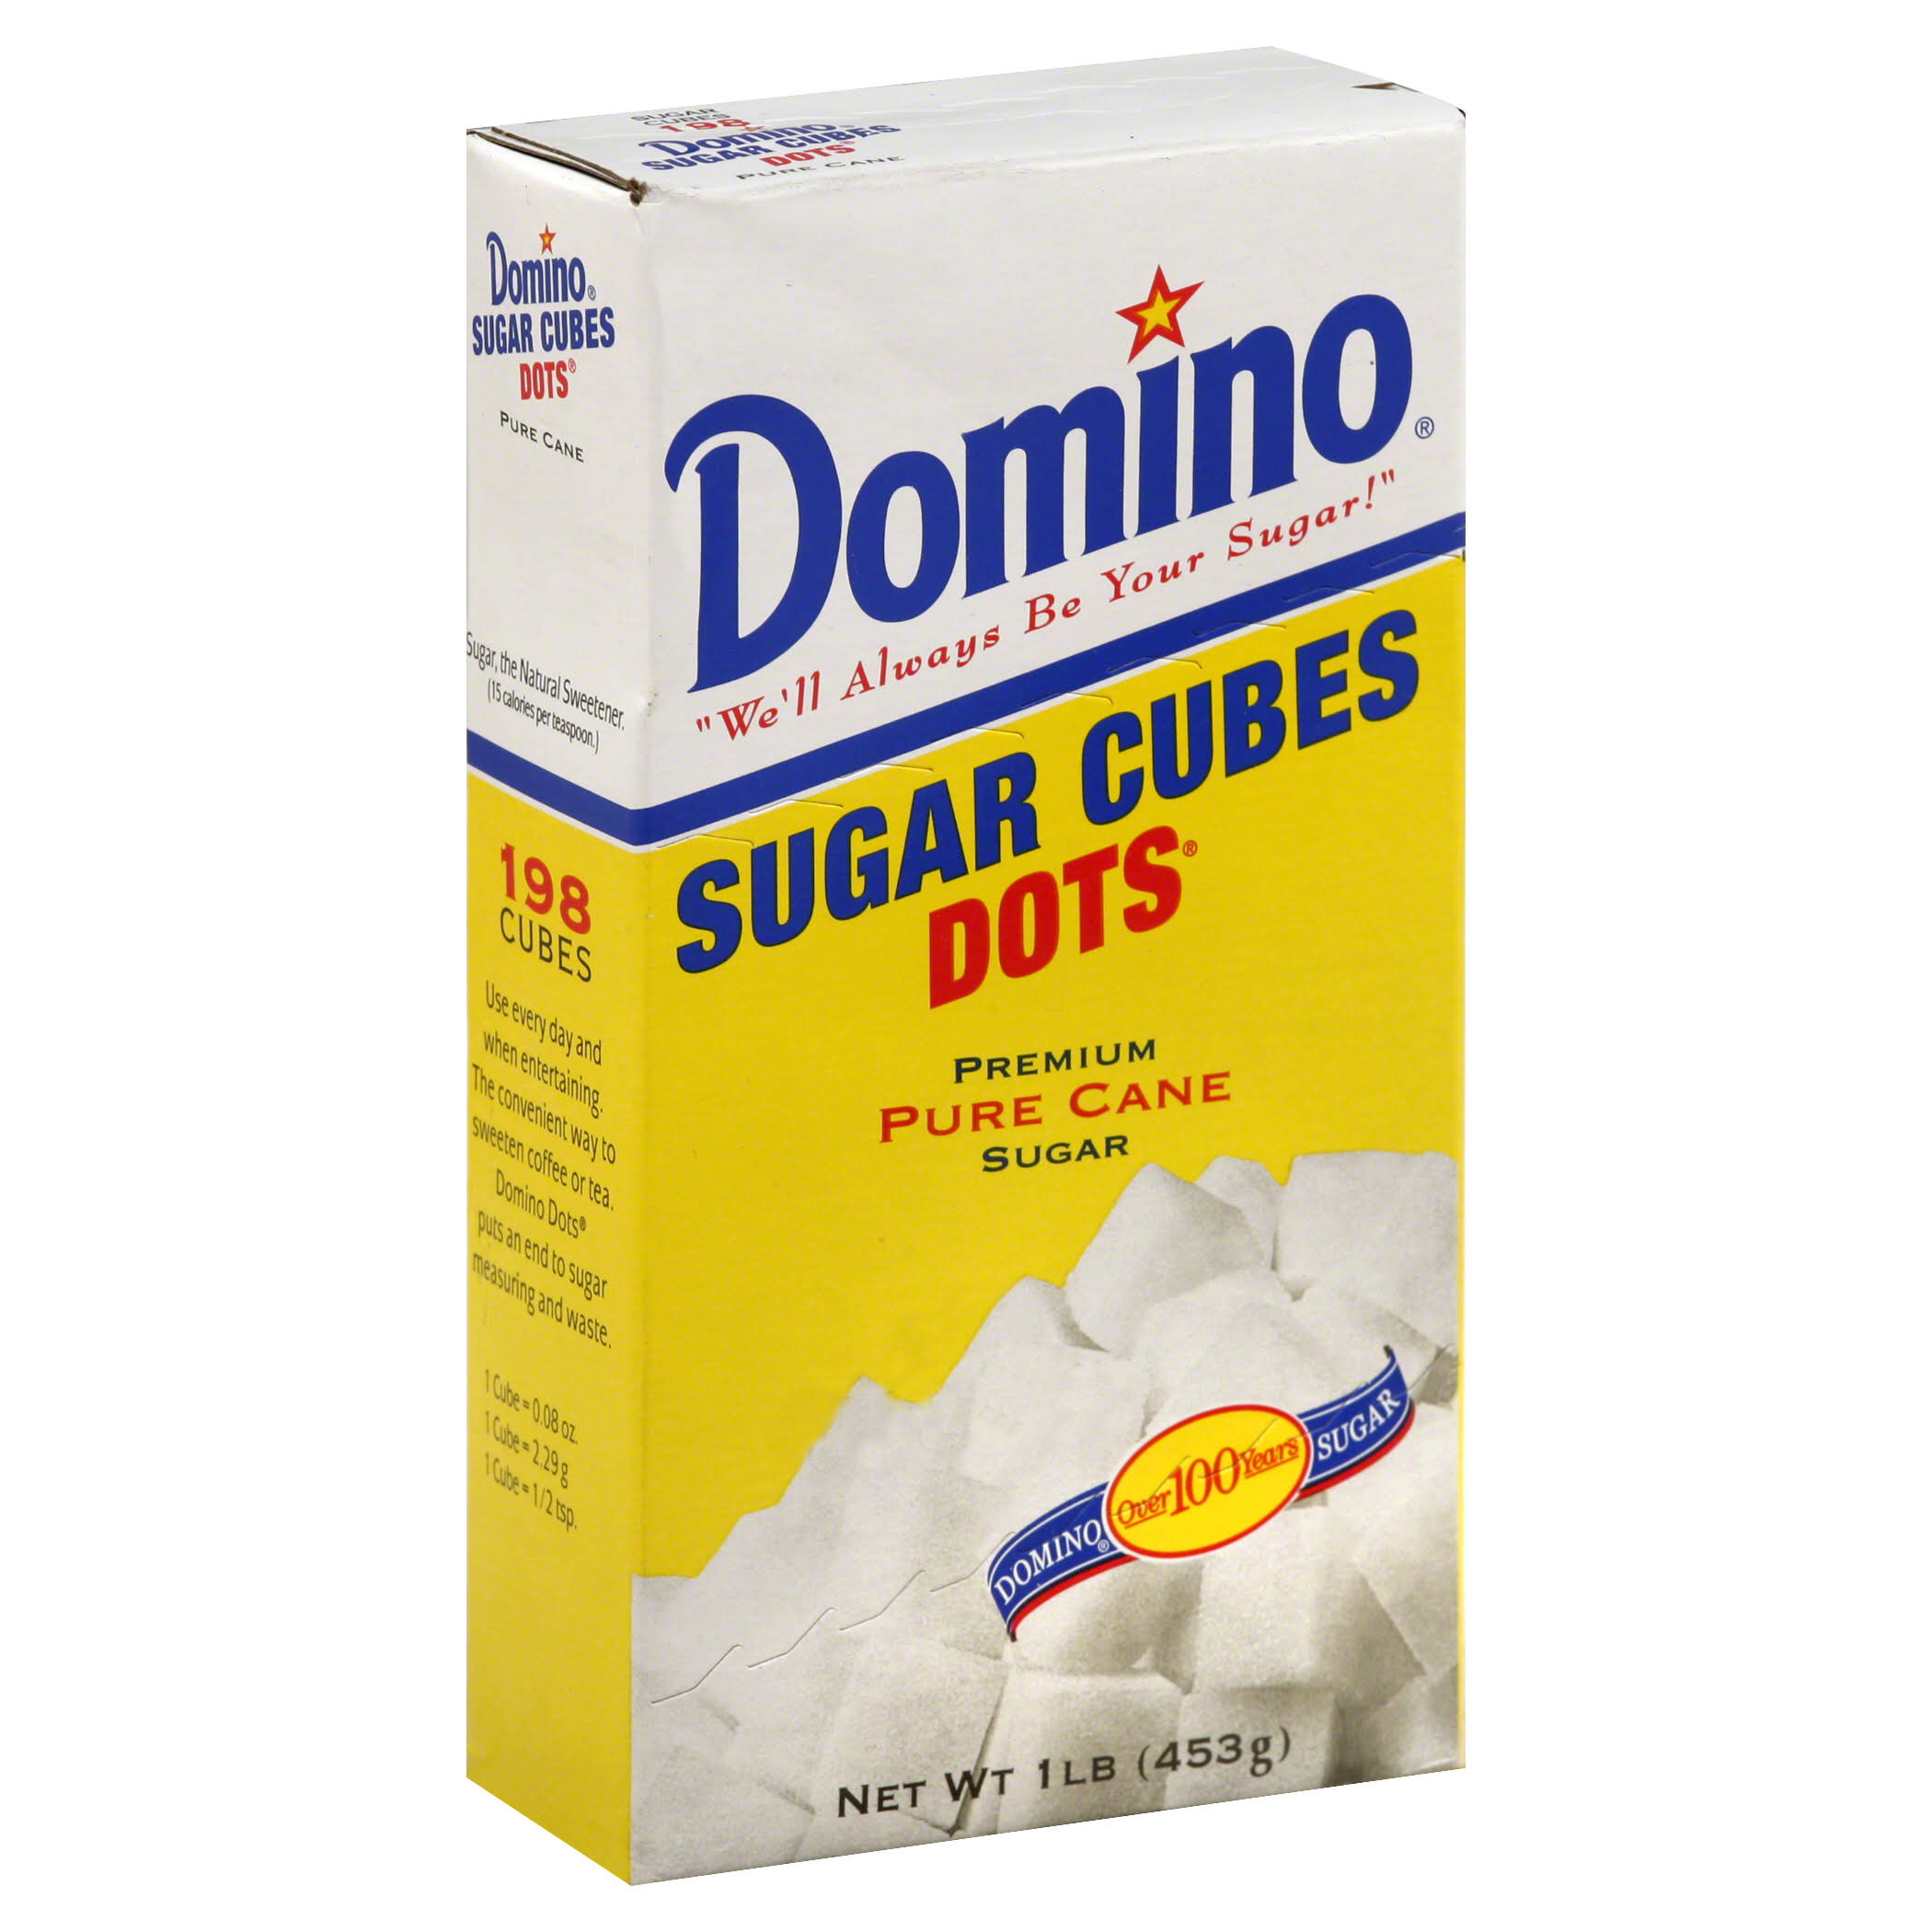 Domino Dots Sugar Cubes - Pure Cane, 126 Cubes